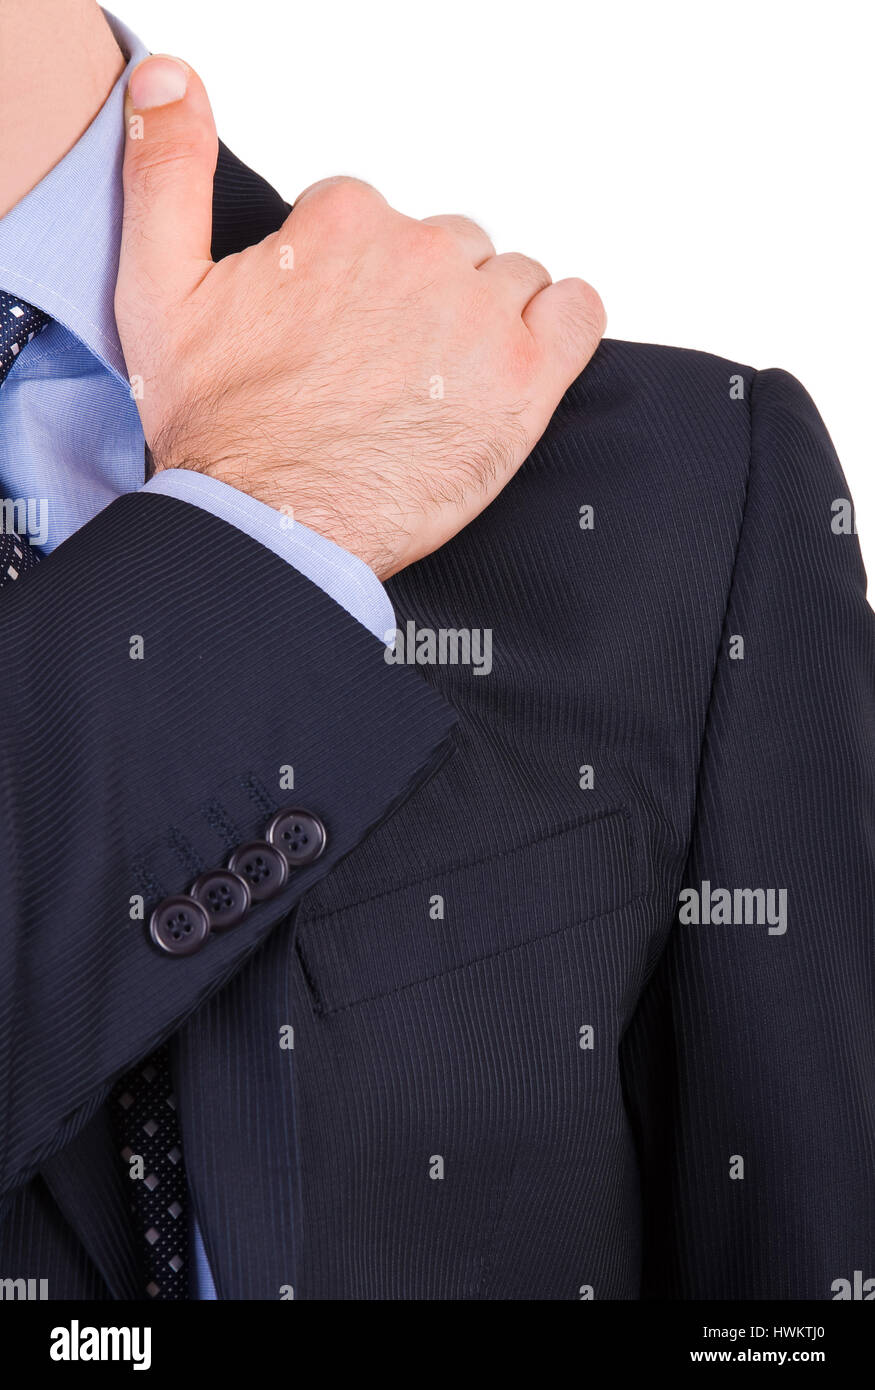 Businessman suffering from shoulder pain. - Stock Image